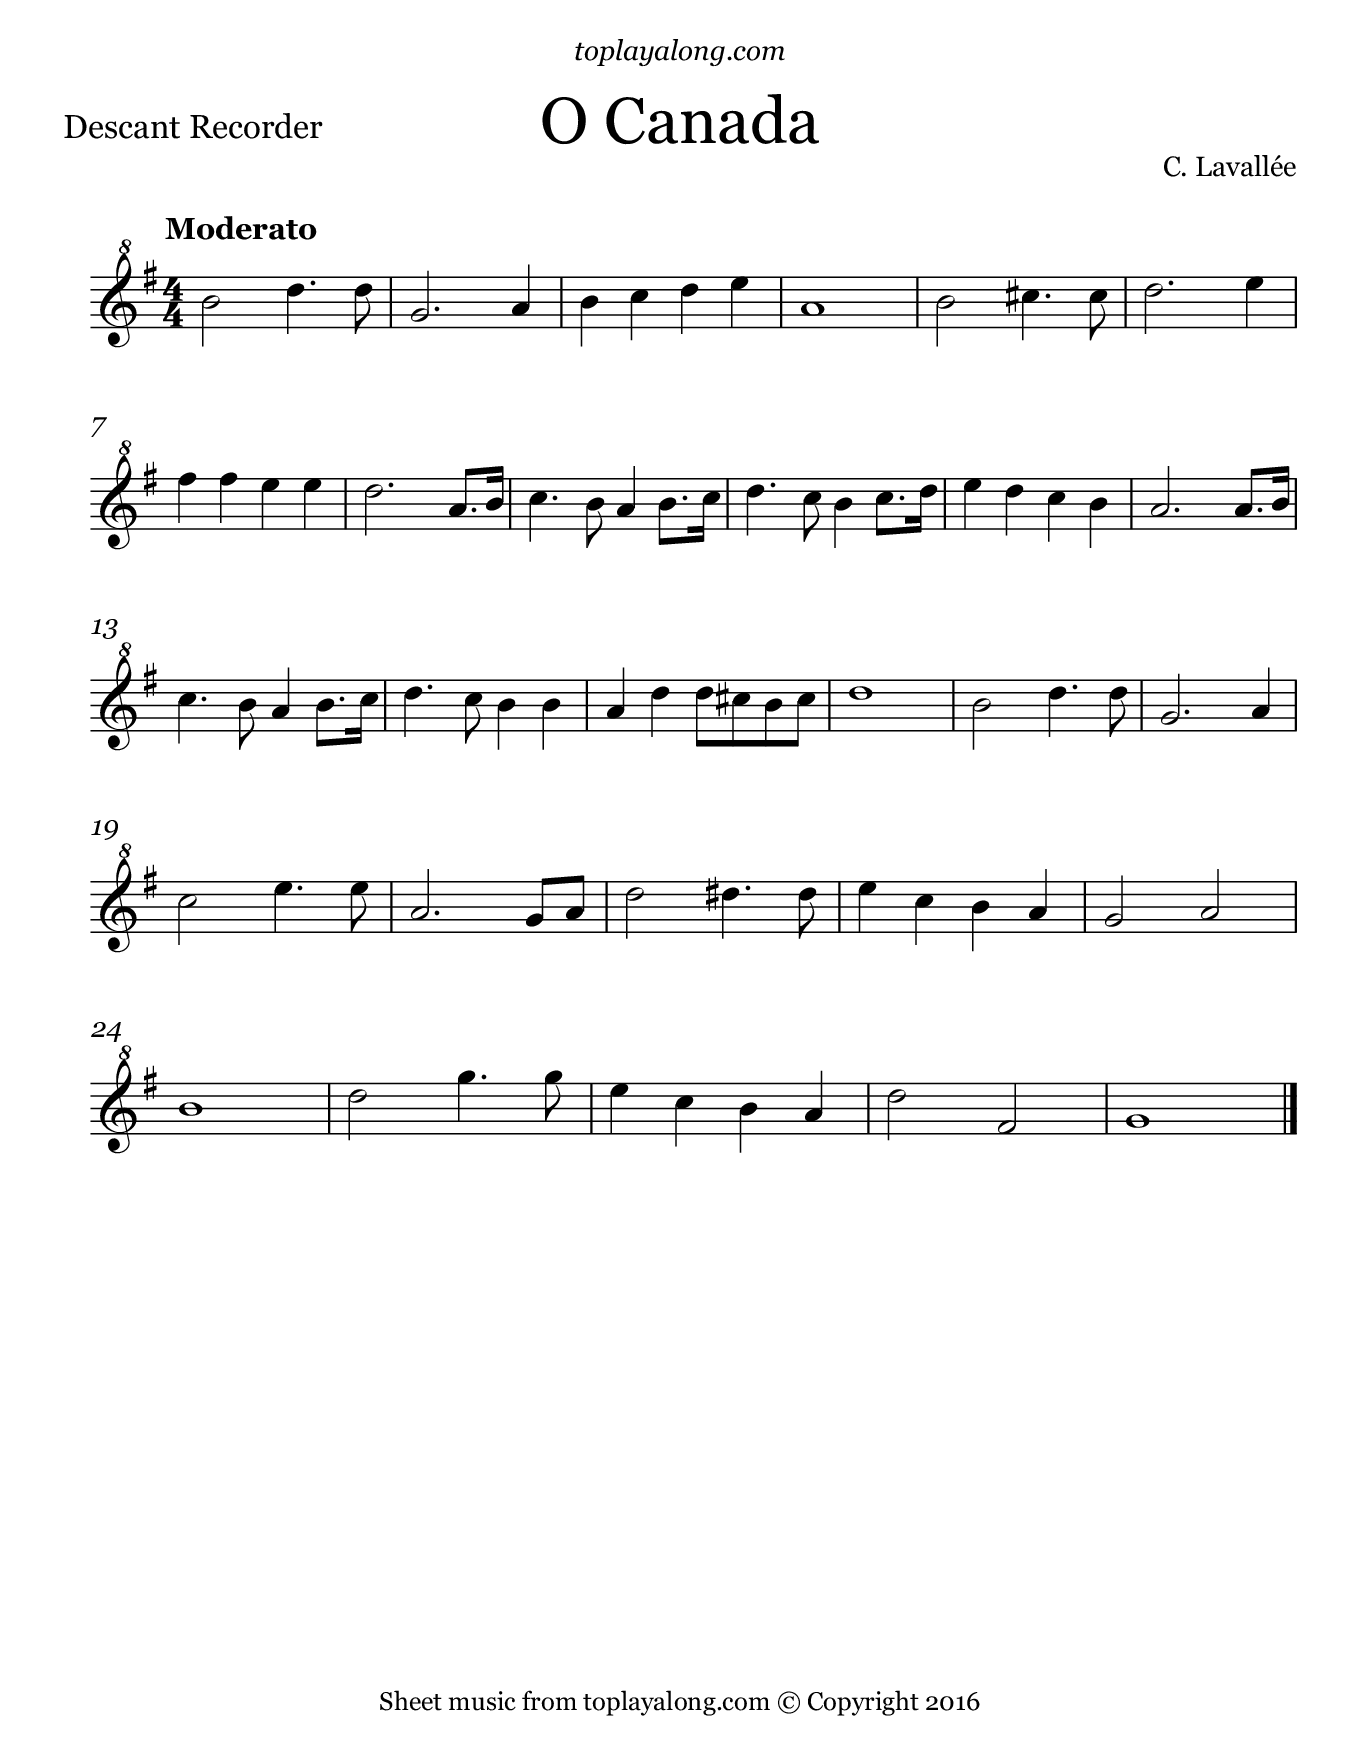 O Canada Free Sheet Music For Recorder Visit Toplayalong Com And Get Access To Hundreds Of Score Beginner Violin Sheet Music Sheet Music Recorder Sheet Music